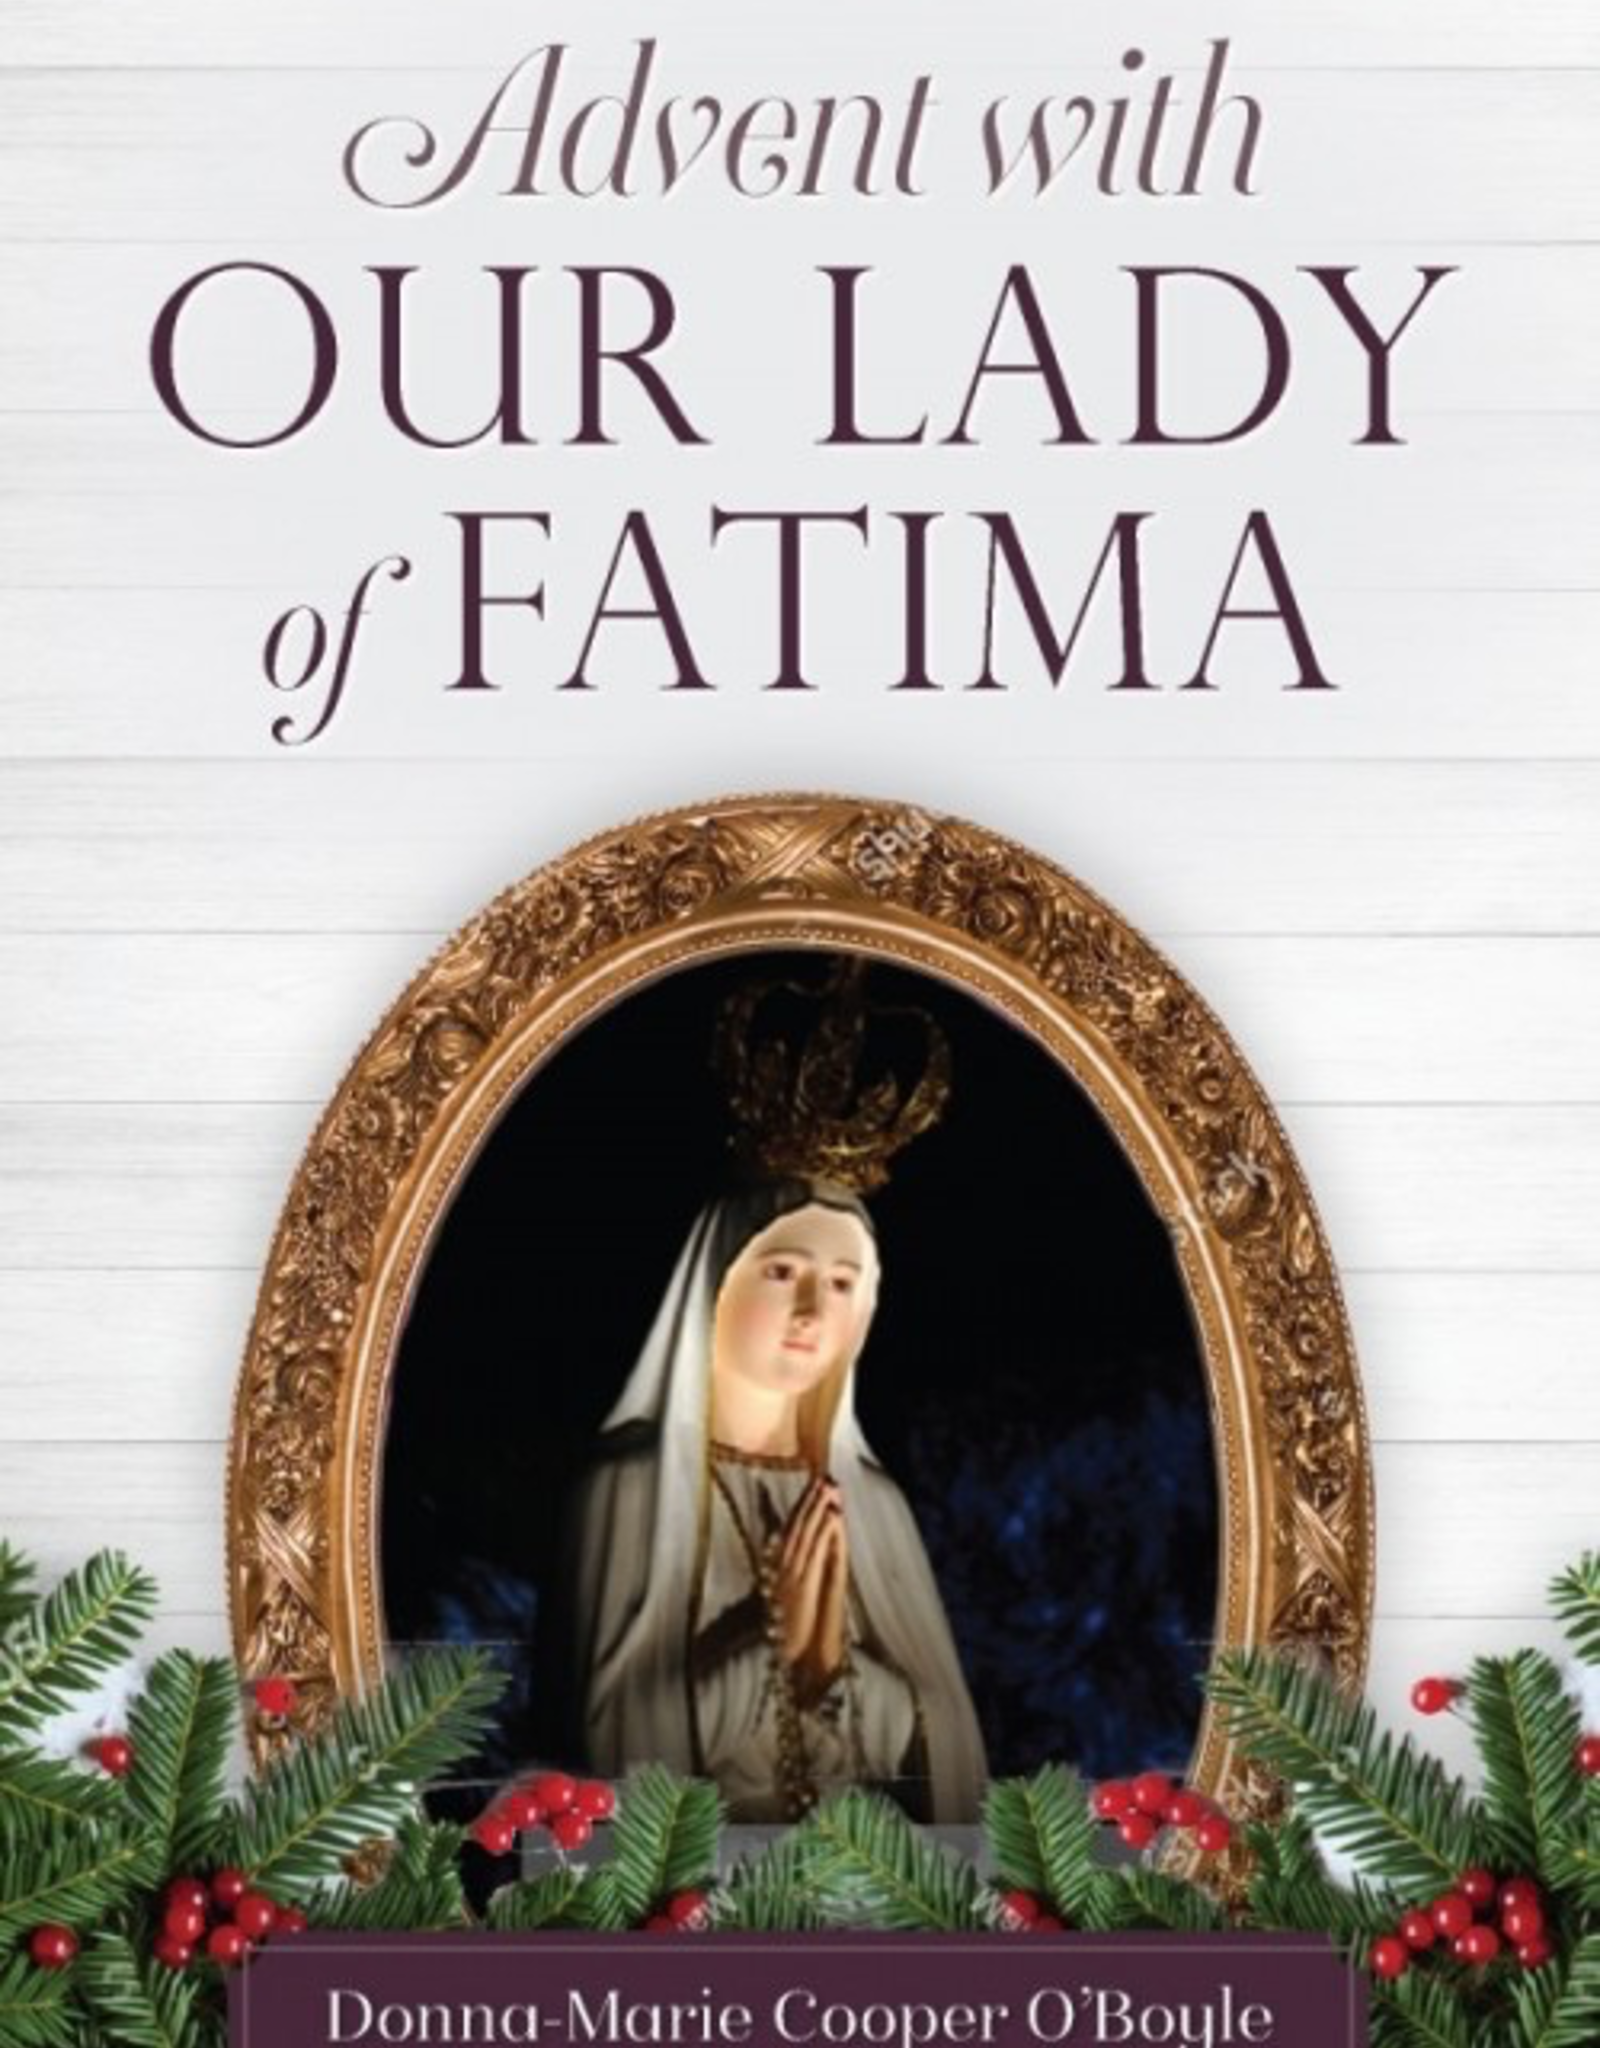 Sophia Institute Advent with Our Lady of Fatima, by Donna-Marie Cooper O'Boyle (paperback)